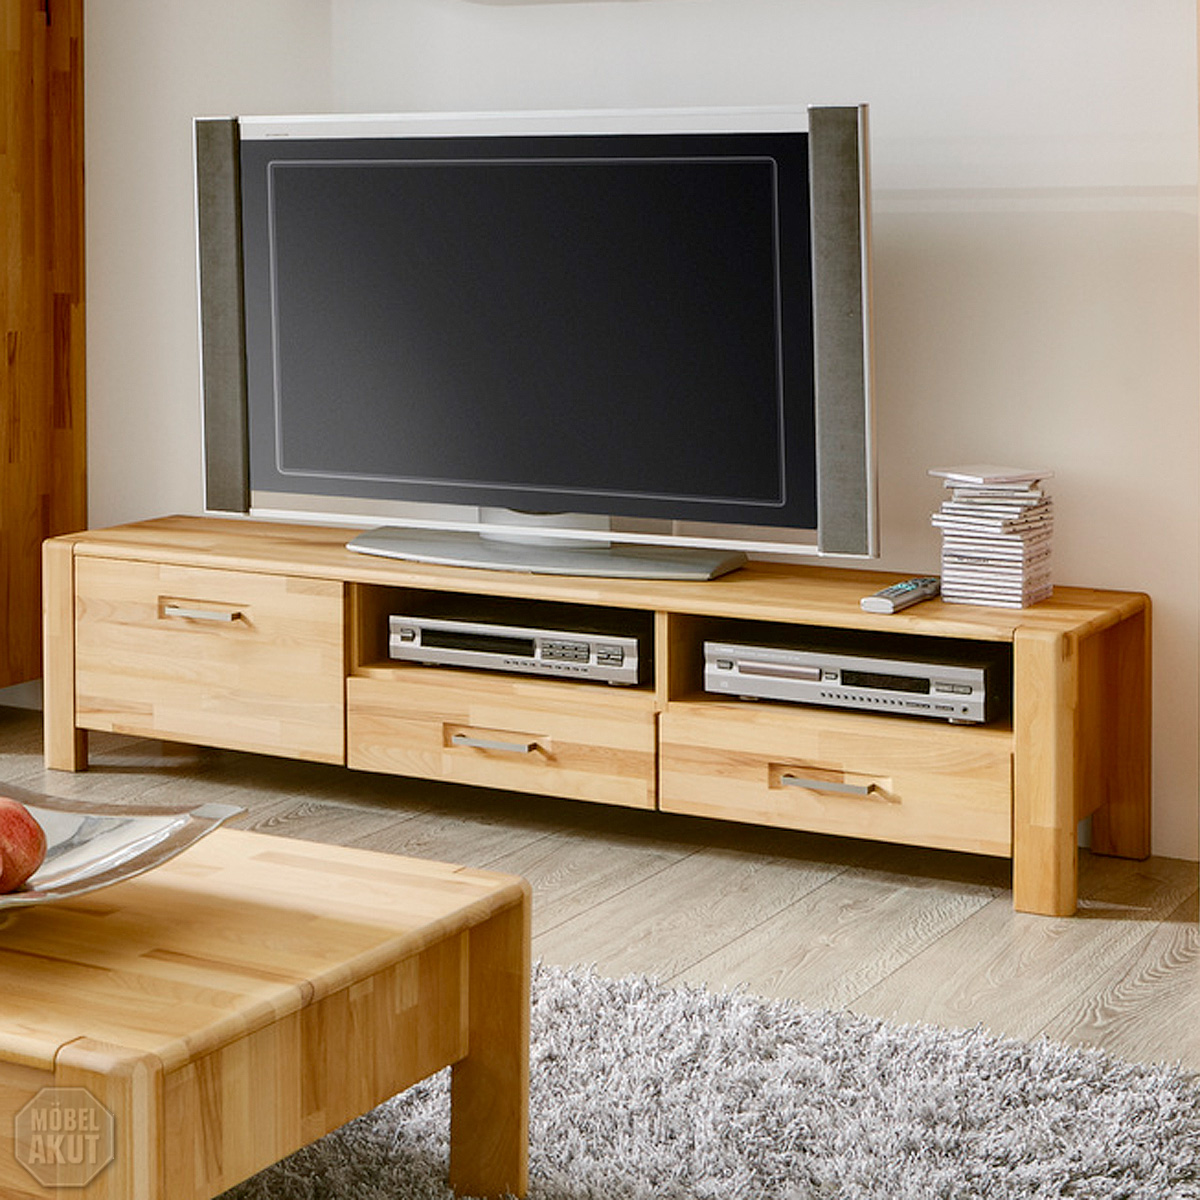 Hifi Schrank Buche Massiv Tv Board Milla Lowboard Tv Regal Hifi In Kern Buche Massiv